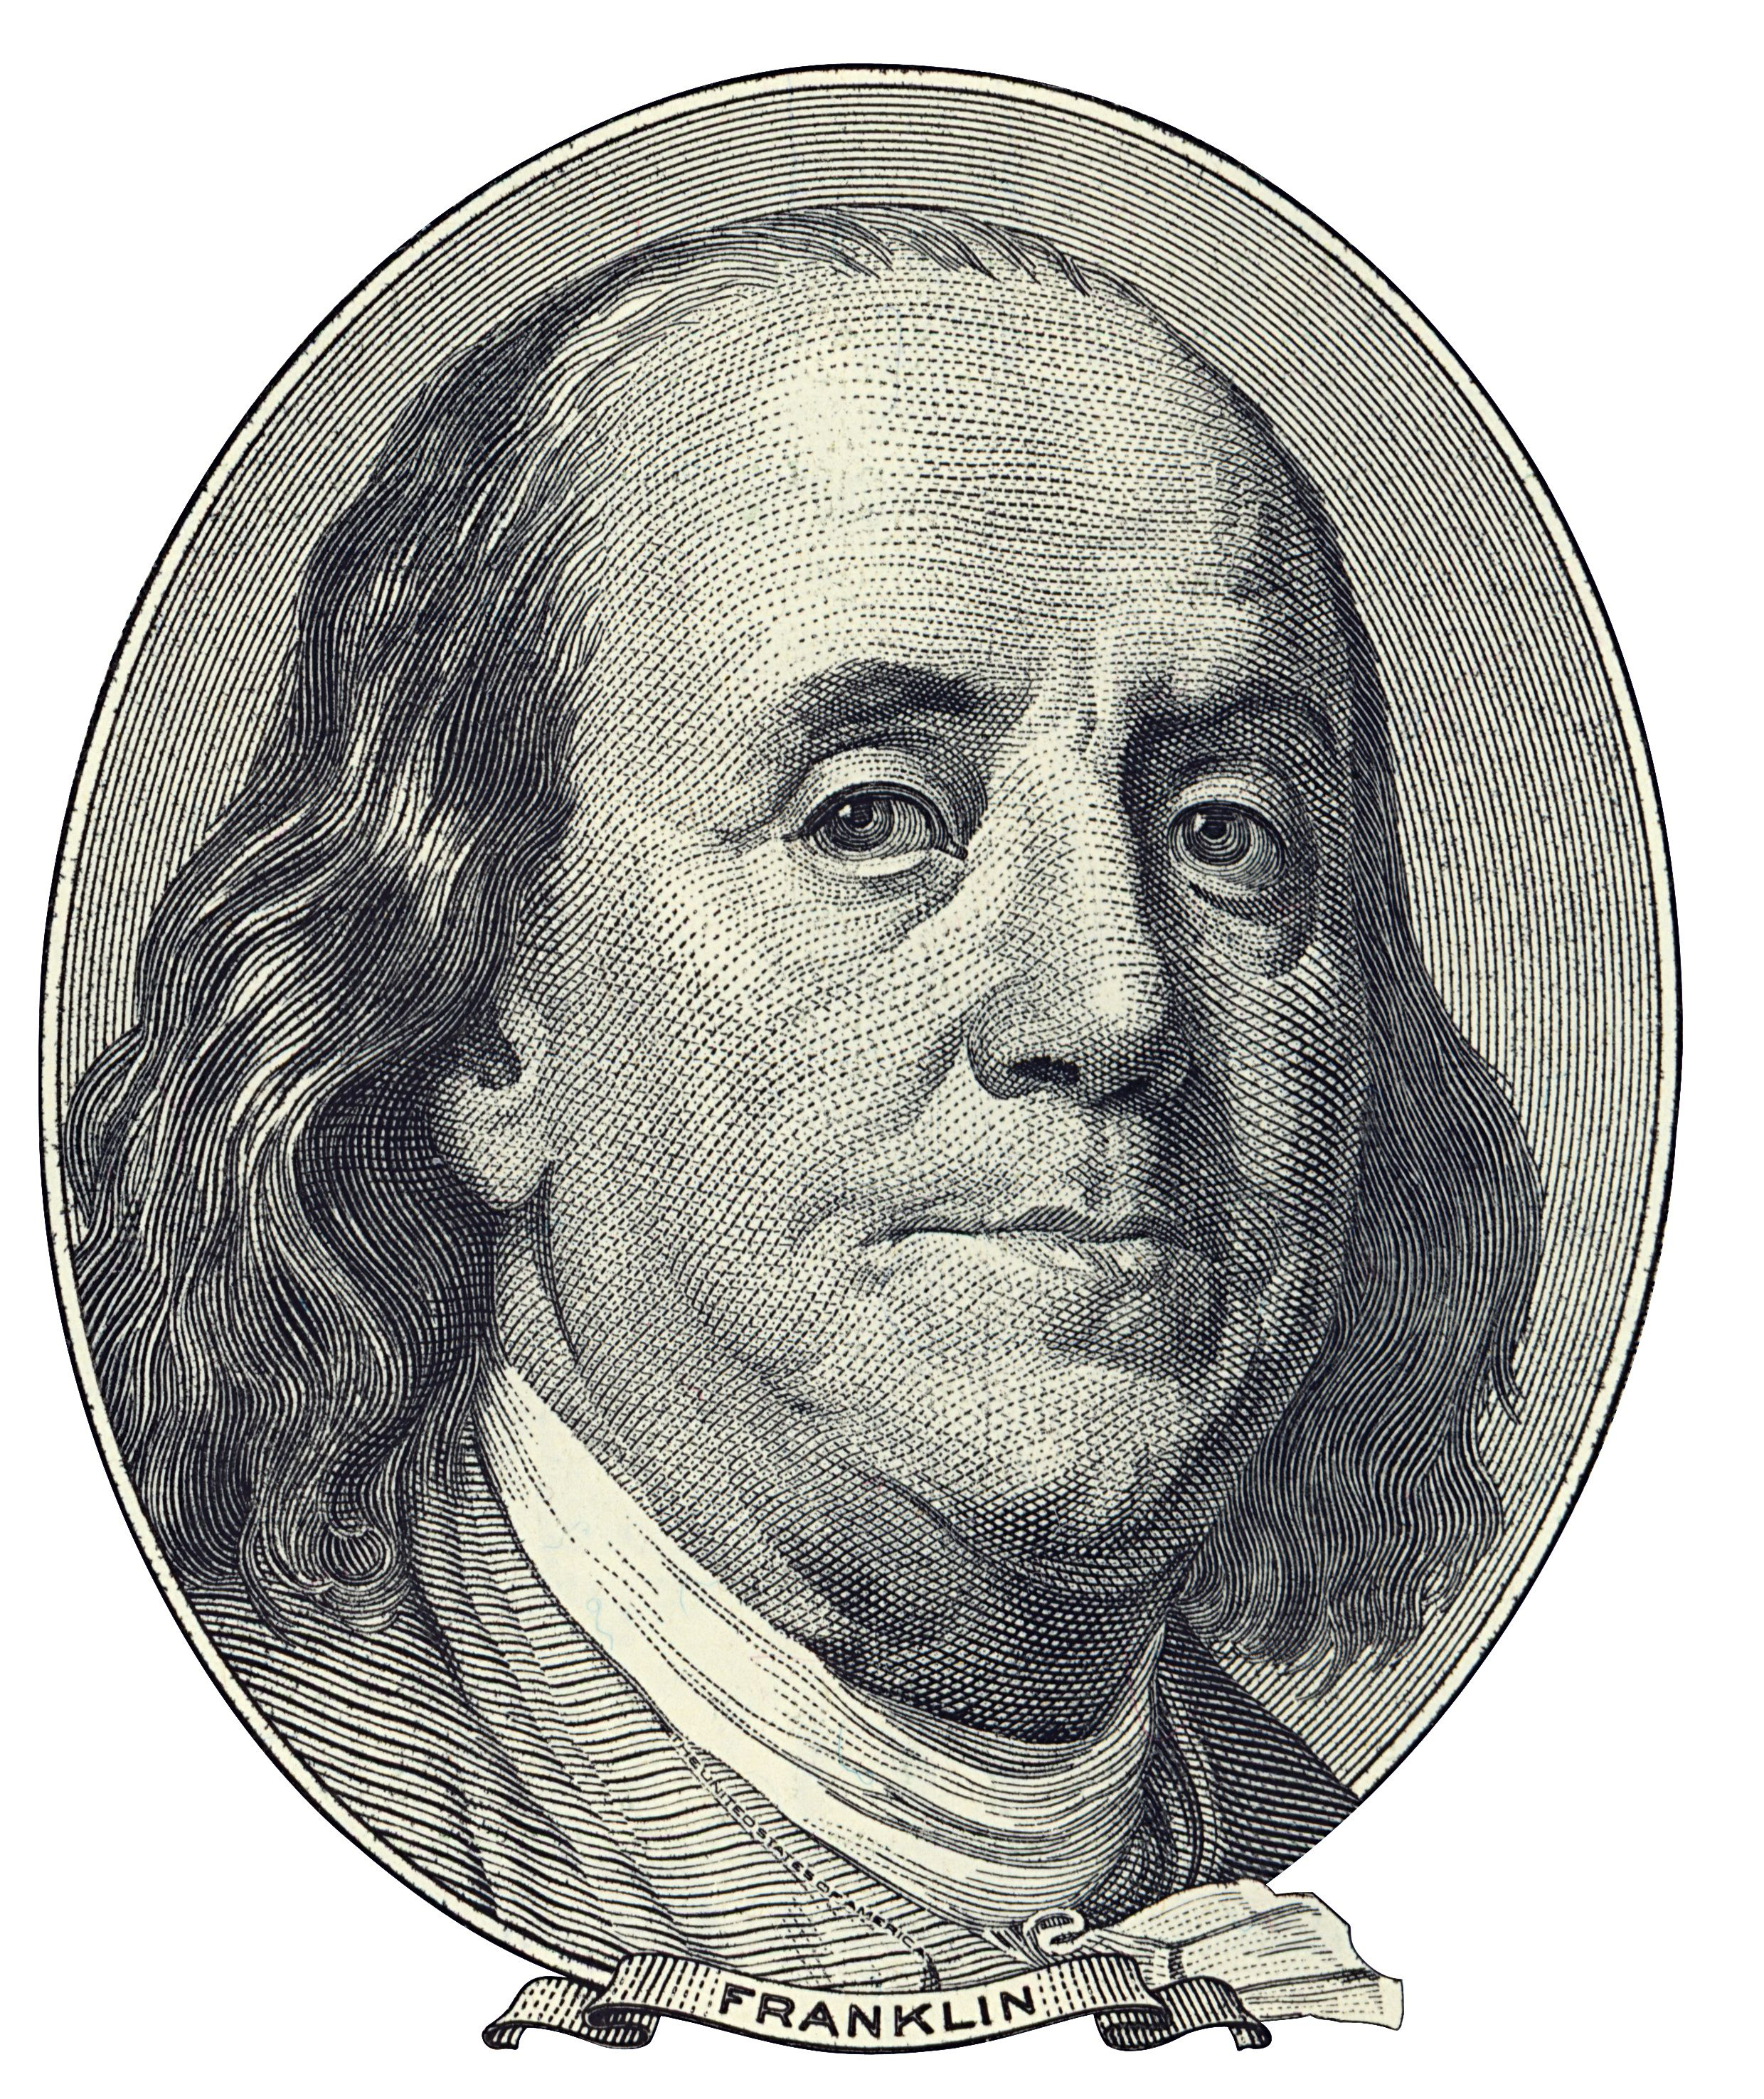 Pin By Bicentennial Boy On Other Benjamin Franklin Ben Franklin Portrait